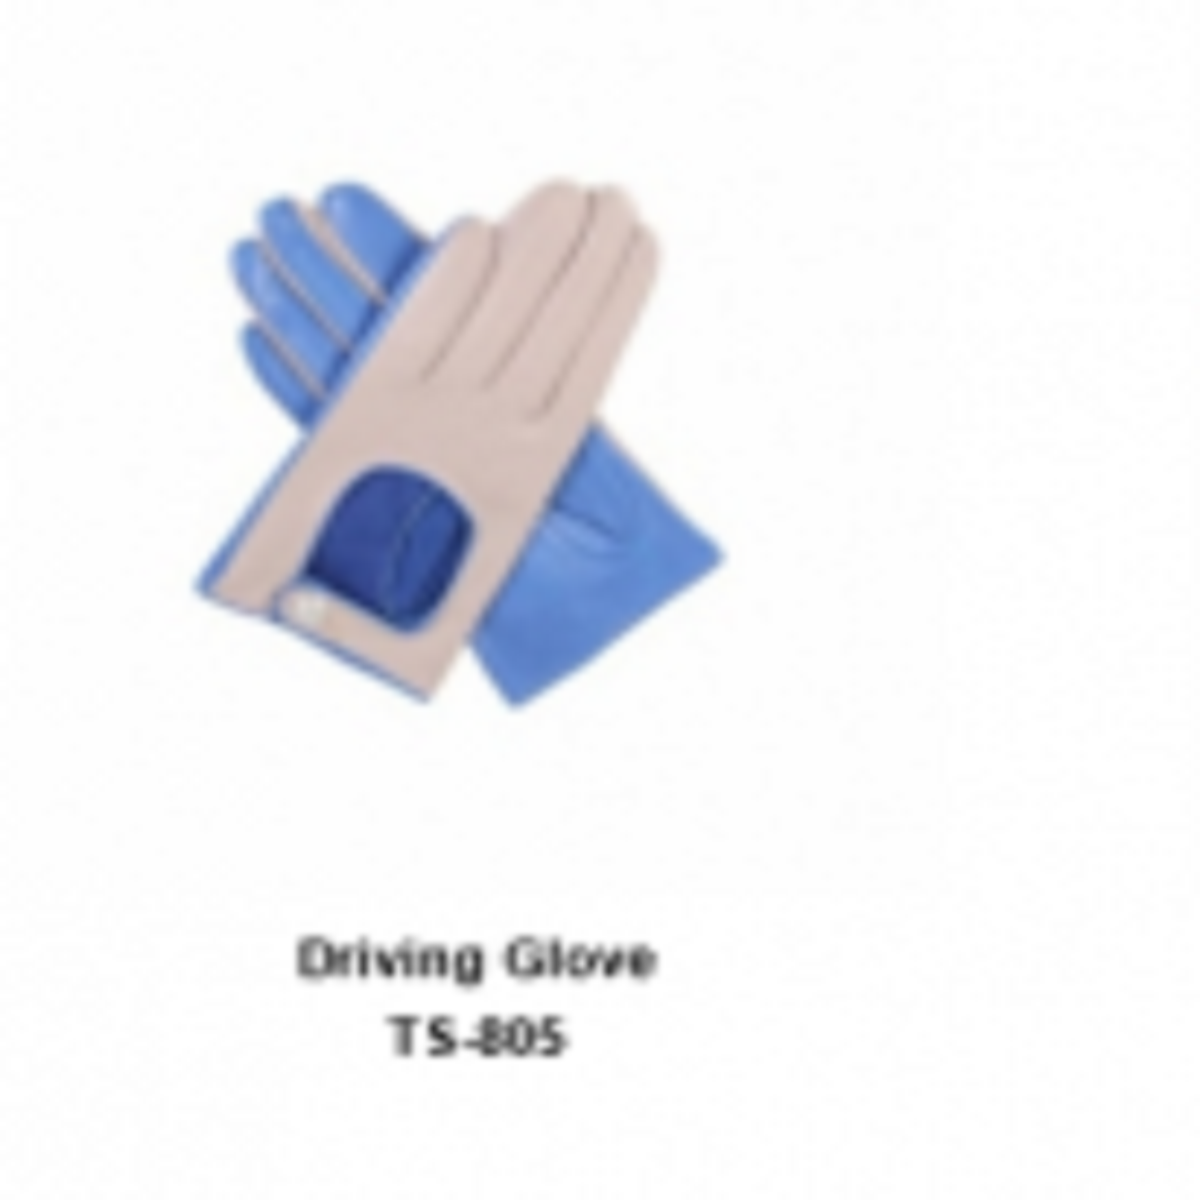 Leather Men's Fashion Driving Gloves Model No. TSI 805